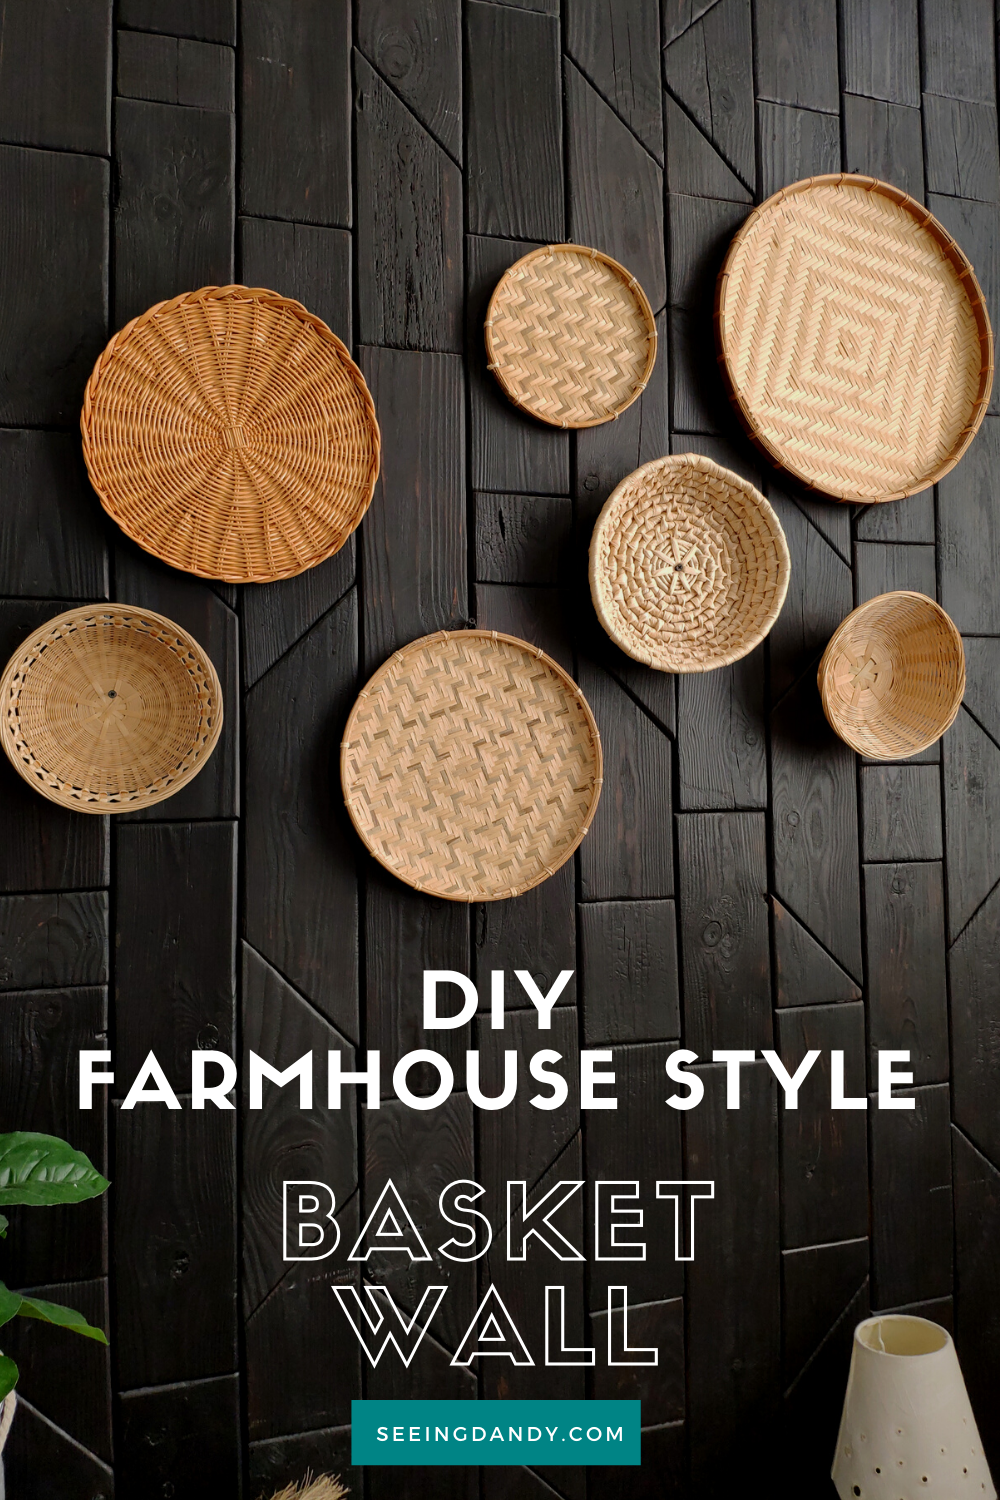 farmhouse style basket wall, diy ideas, for the home, home decor, decorating, decorative wall, fruit baskets, decorative baskets, woven baskets